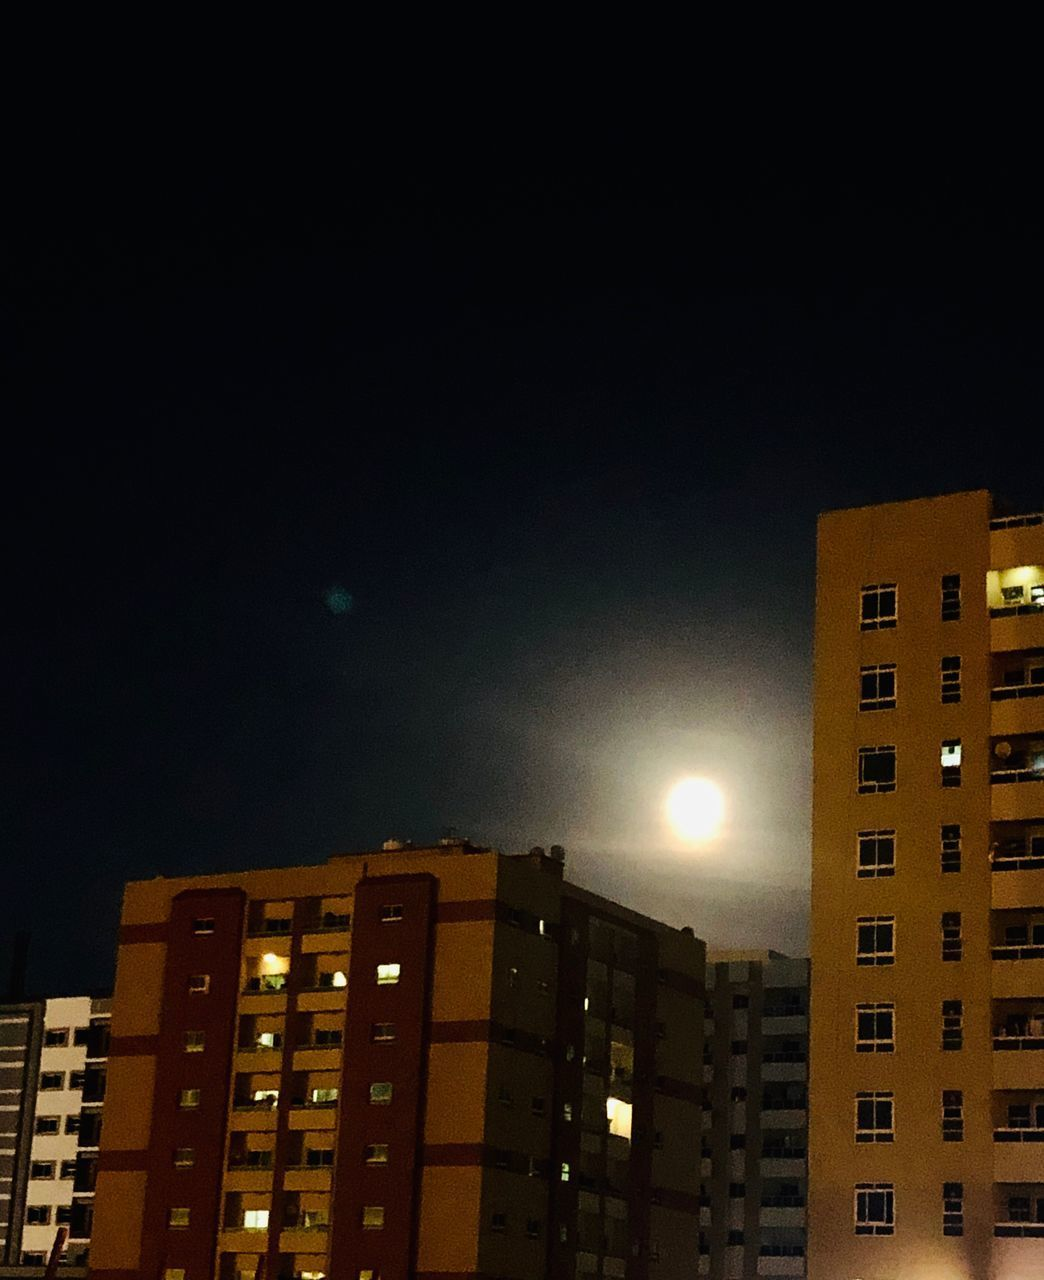 architecture, building exterior, night, built structure, building, city, sky, illuminated, low angle view, no people, copy space, moon, residential district, nature, outdoors, lighting equipment, clear sky, apartment, tall - high, office building exterior, skyscraper, moonlight